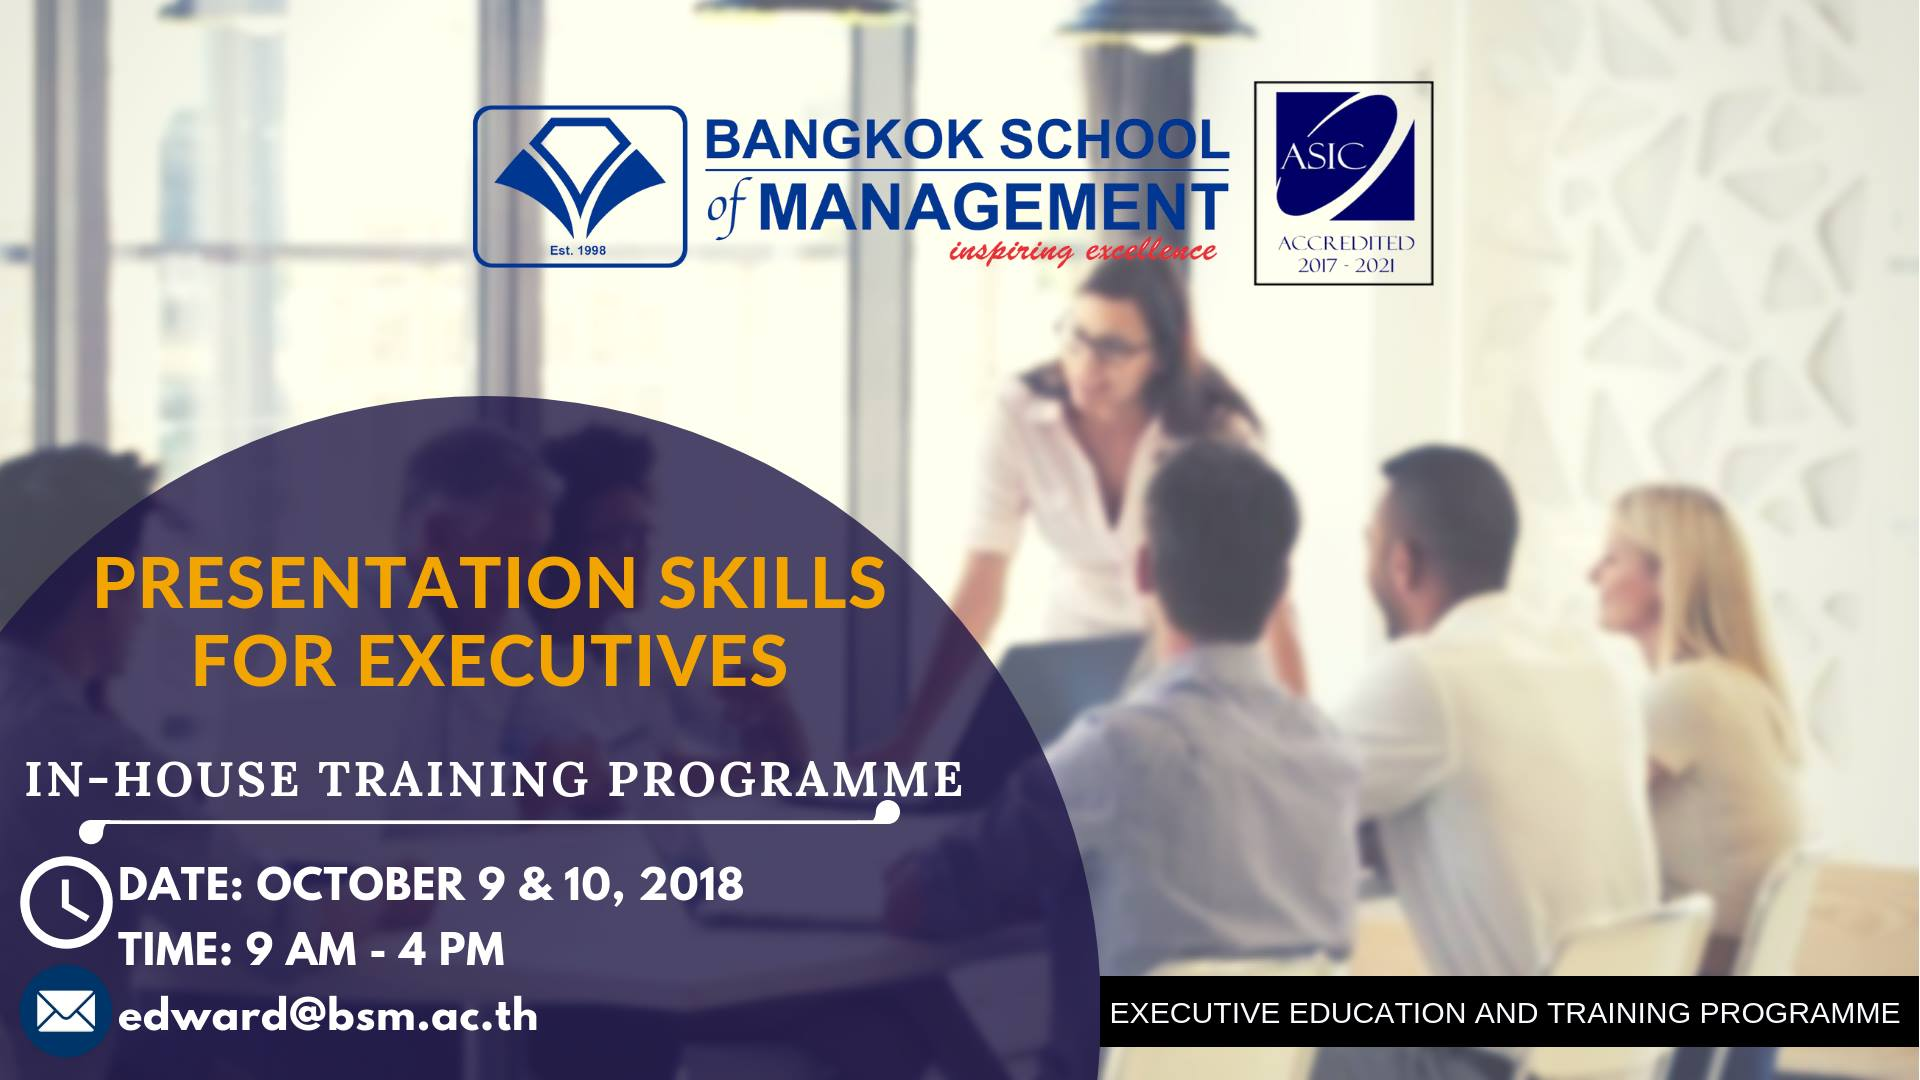 Date: October 9 – 10, 2018Training Programme: Presentation Skills for Executives